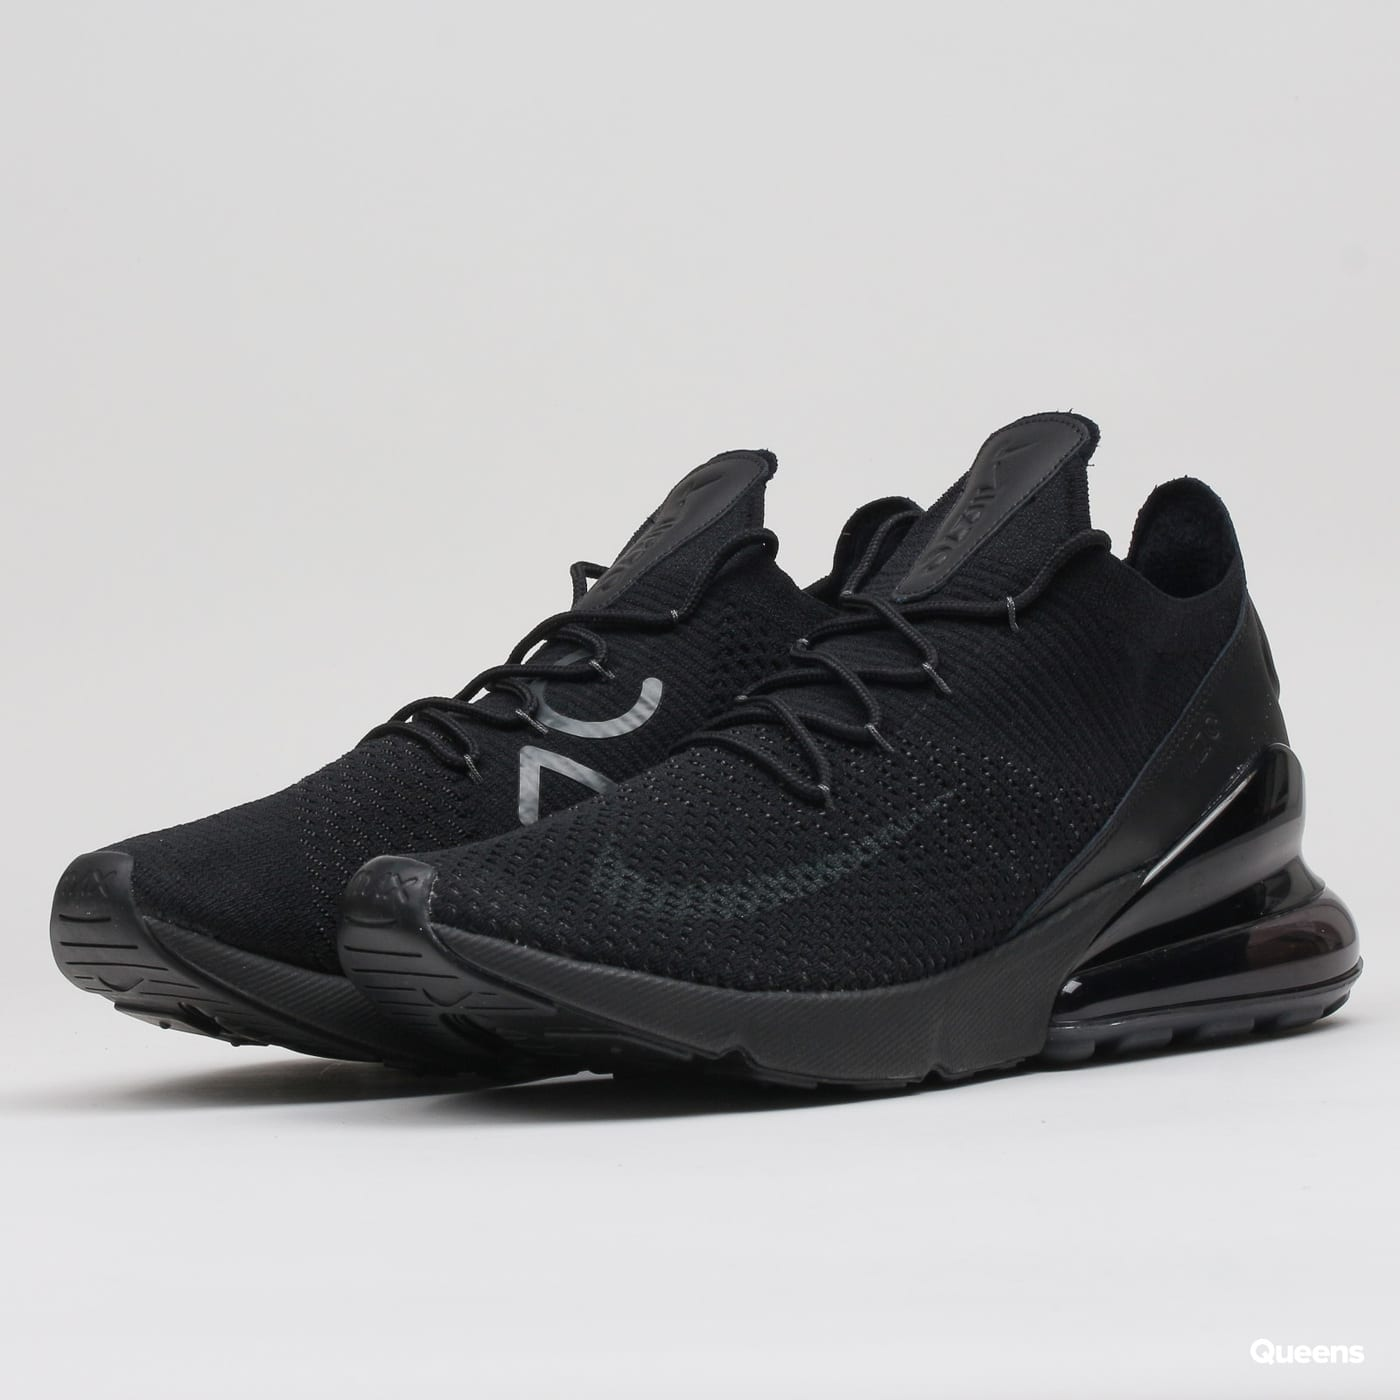 Boty Nike Air Max 270 Flyknit (AO1023-005) – Queens 💚 4c195d0ed55